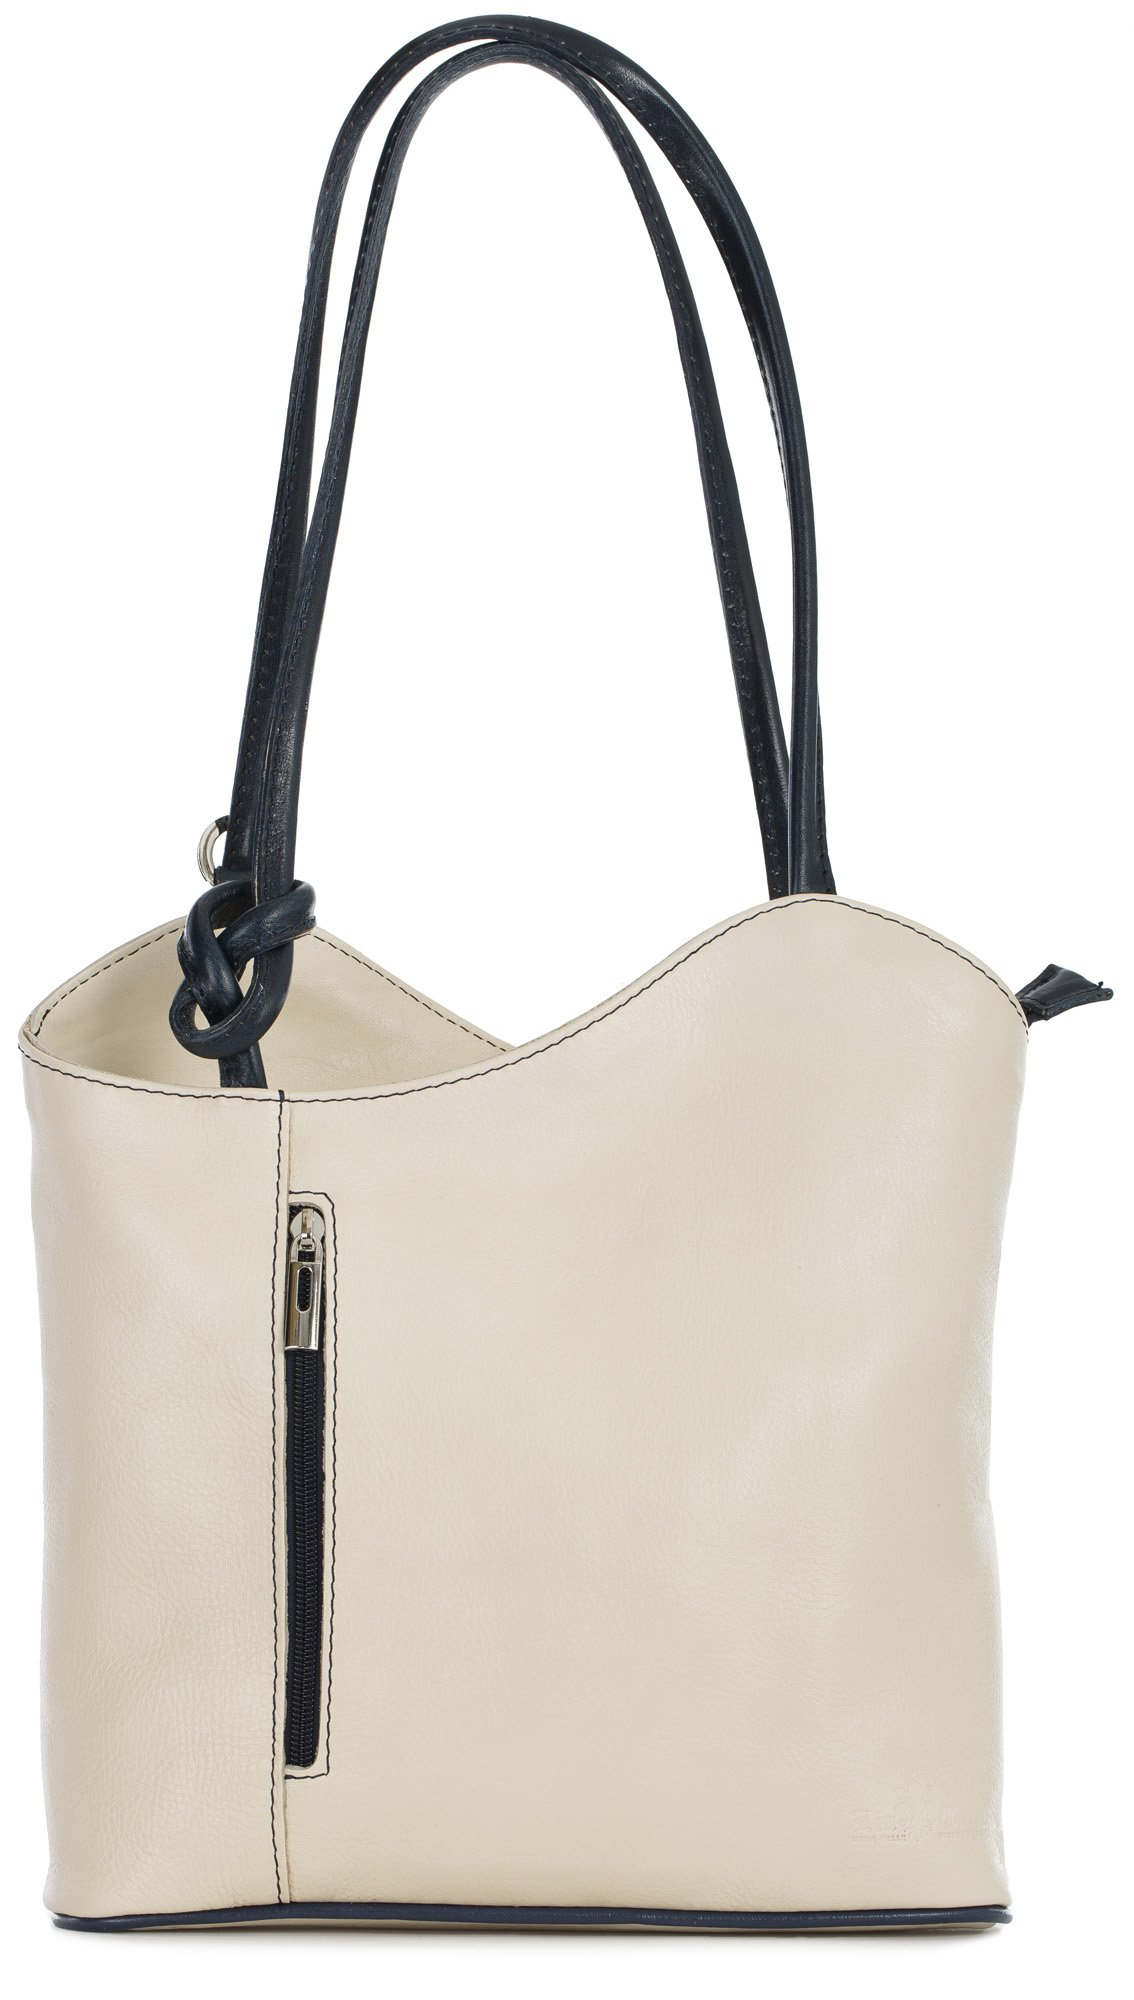 LiaTalia Womens Soft Lush Italian Leather Piping Detail Shoulder or Backpack Bag with Protective Storage Bag - Libby (Cream Blue) by LiaTalia Vera Pelle Made In Italy